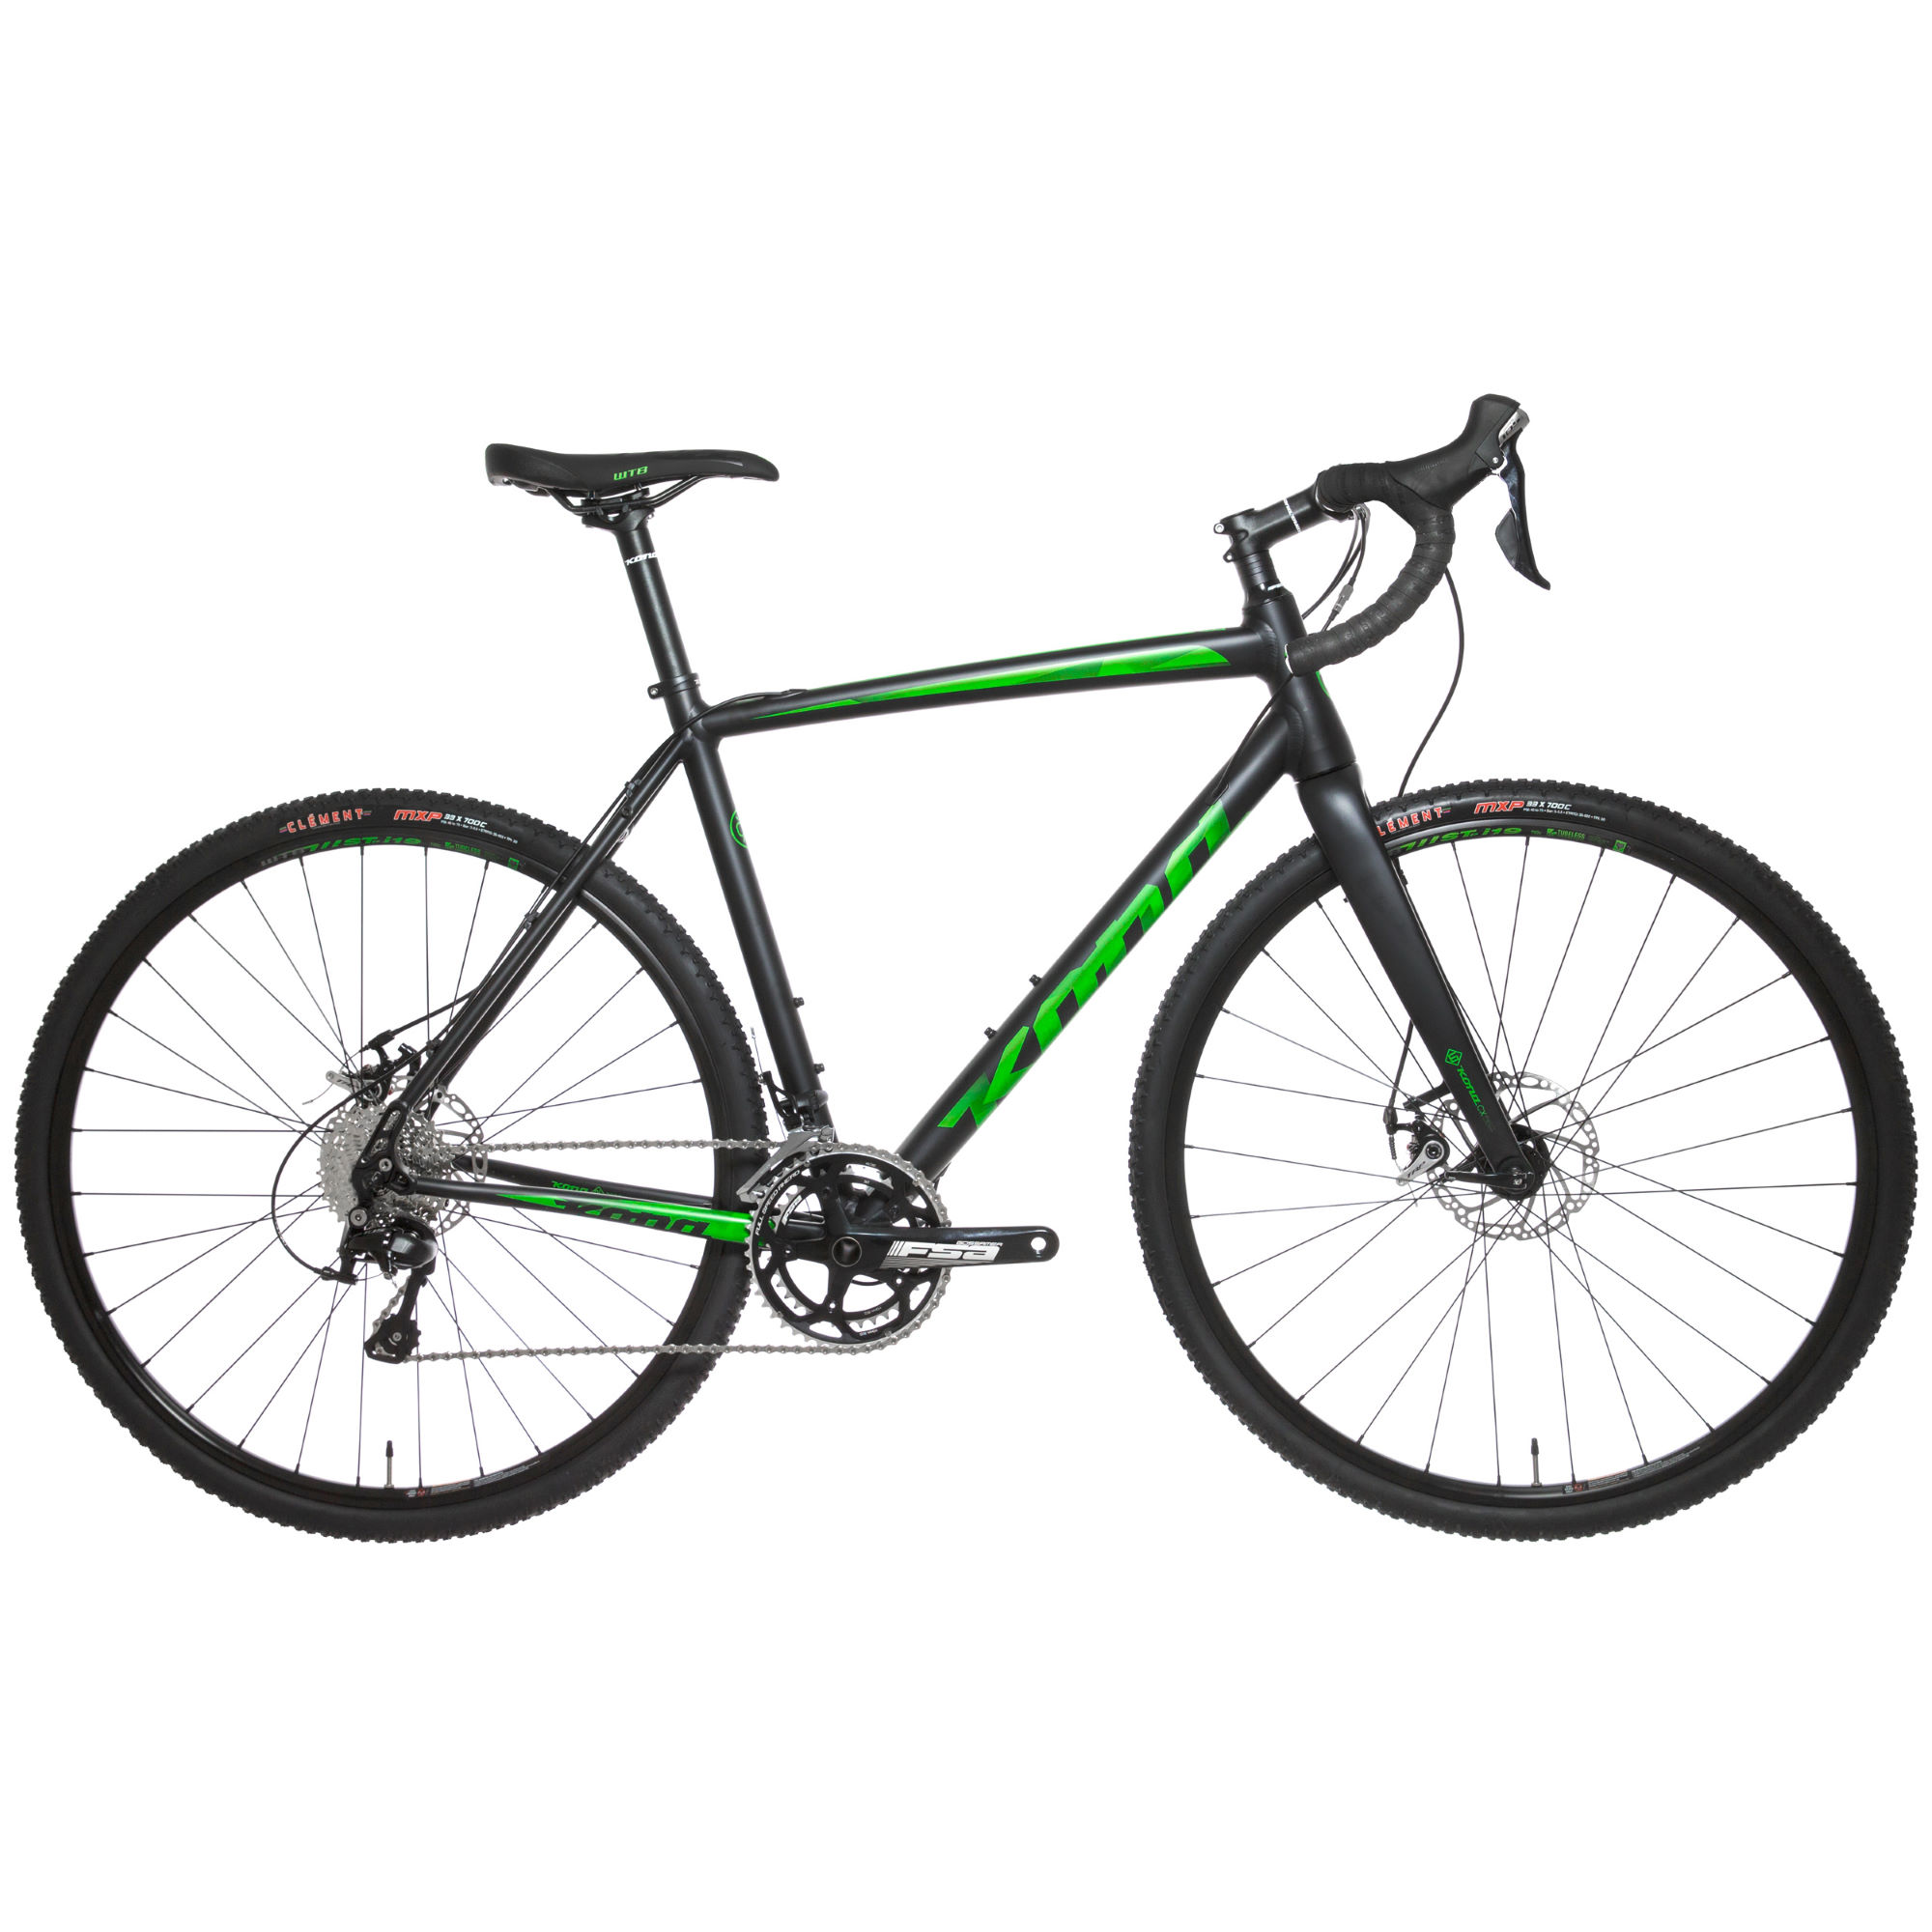 Wiggle Kona Jake The Snake 2017 Cyclocross Bike Cyclocross Bikes